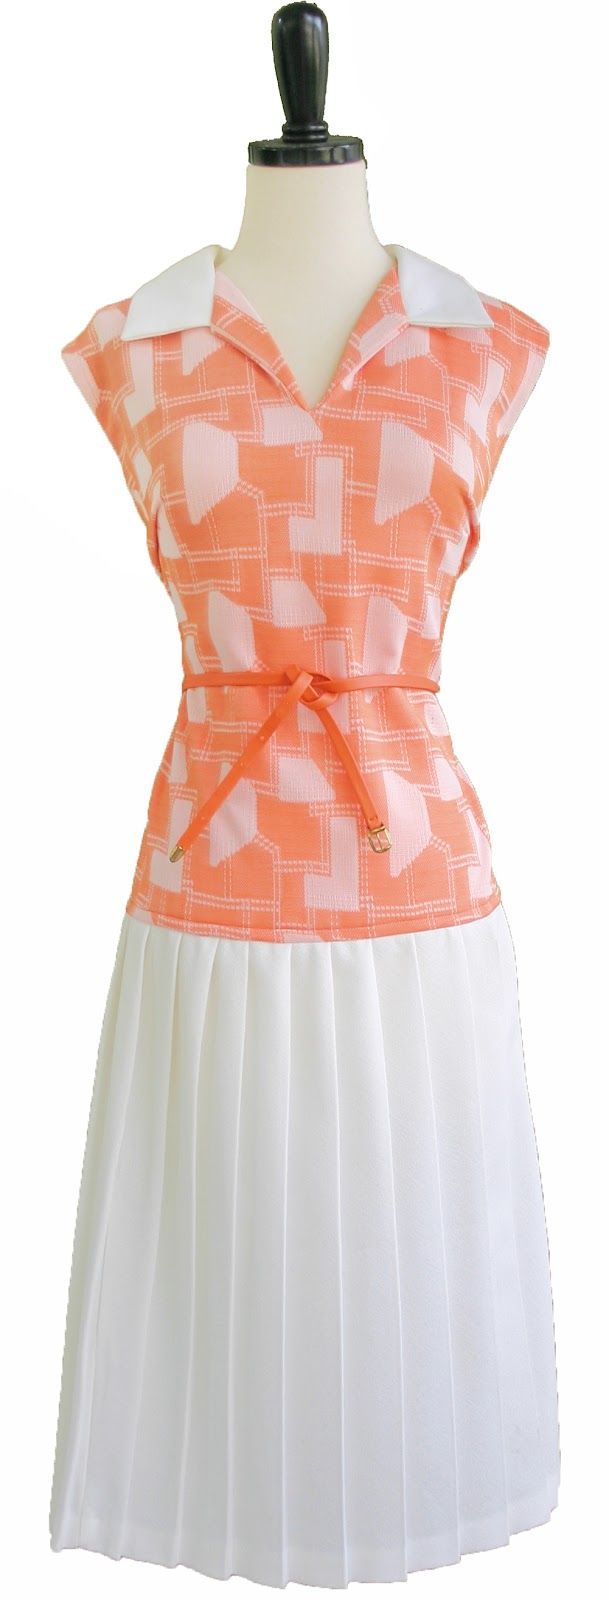 Retro Dress: Retro Ey Dress, Retro Dress, Style Inspiration, Peach Perfection, Style Pinboard, Clever Crafts, Craft Ideas